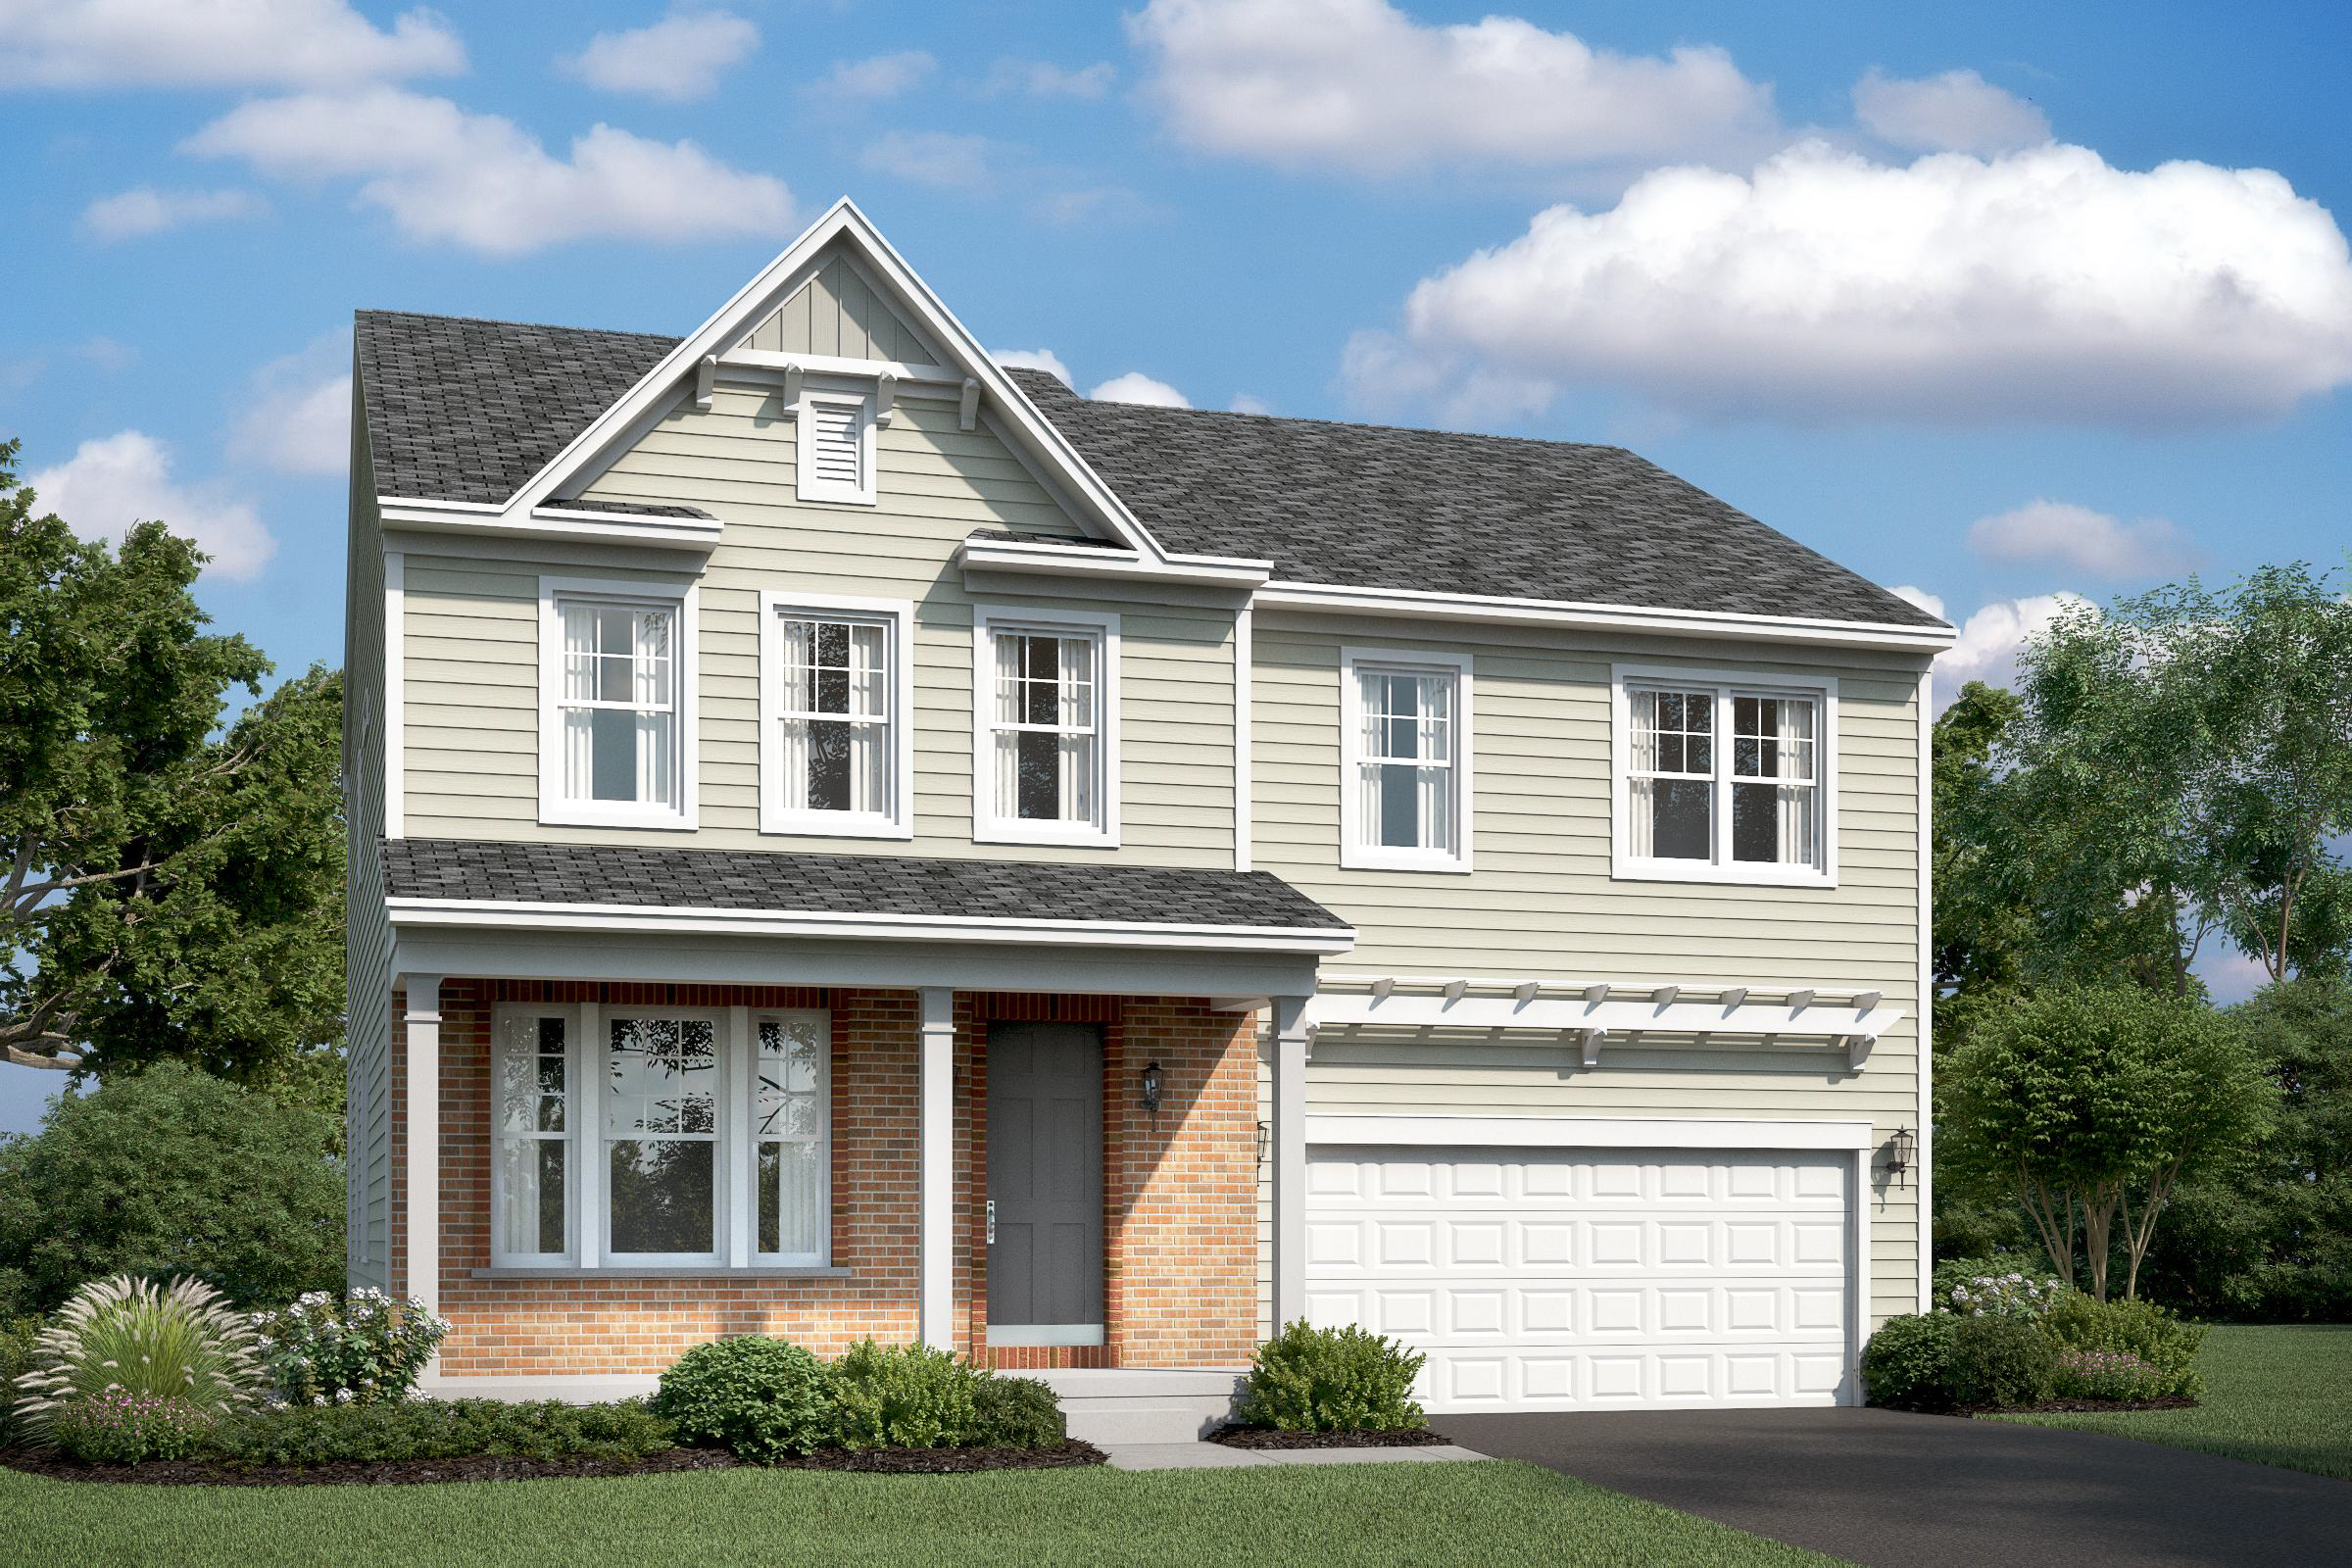 tomasen eb new homes at leeland station in virginia